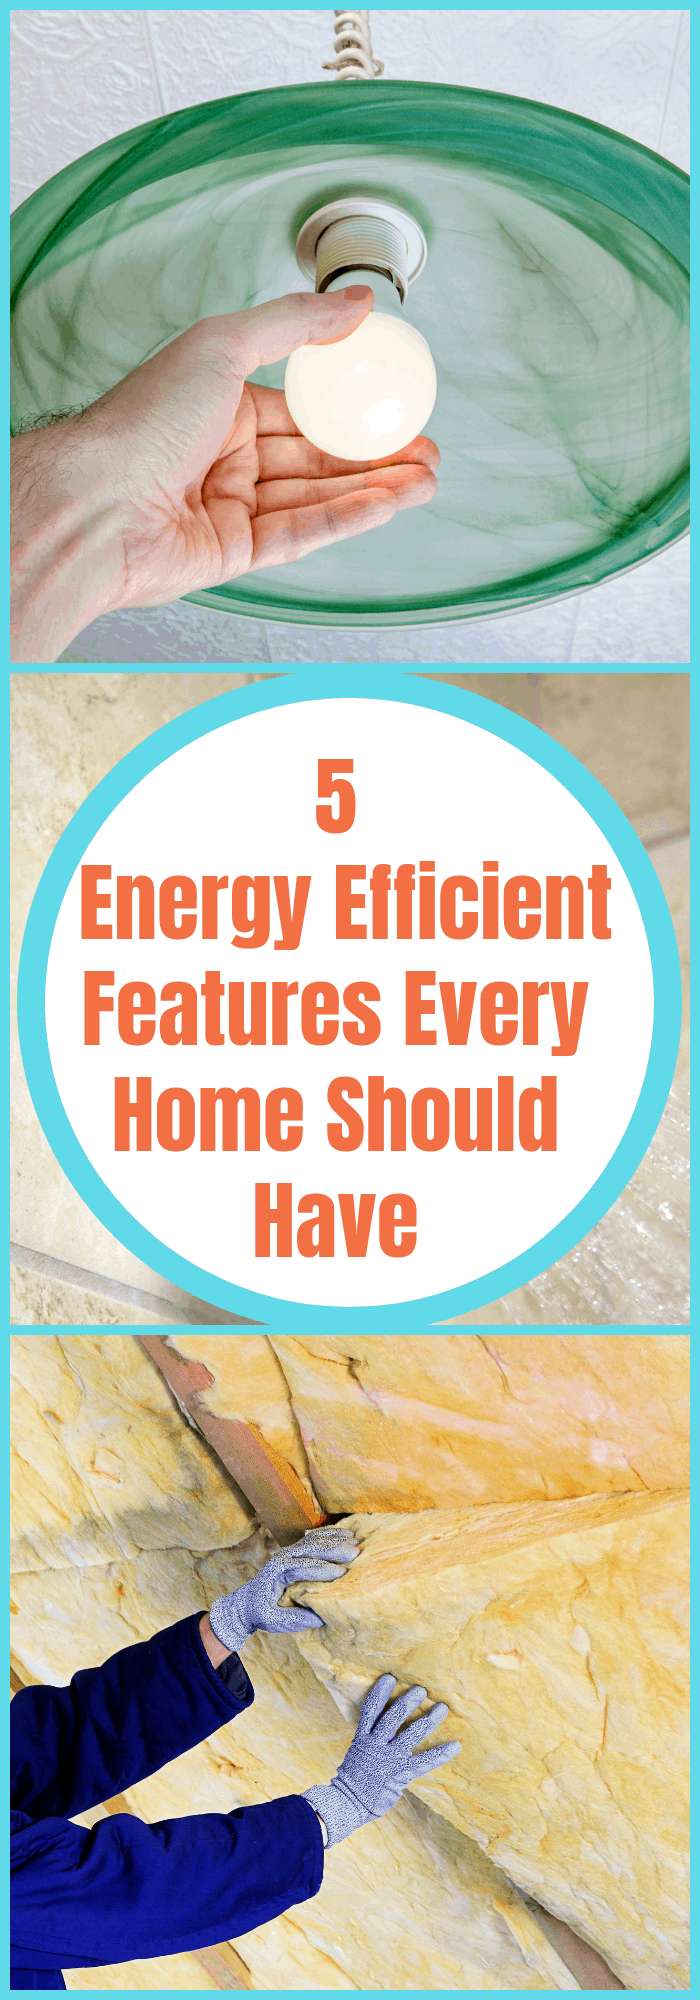 Energy Efficient Features Every Home Should Have